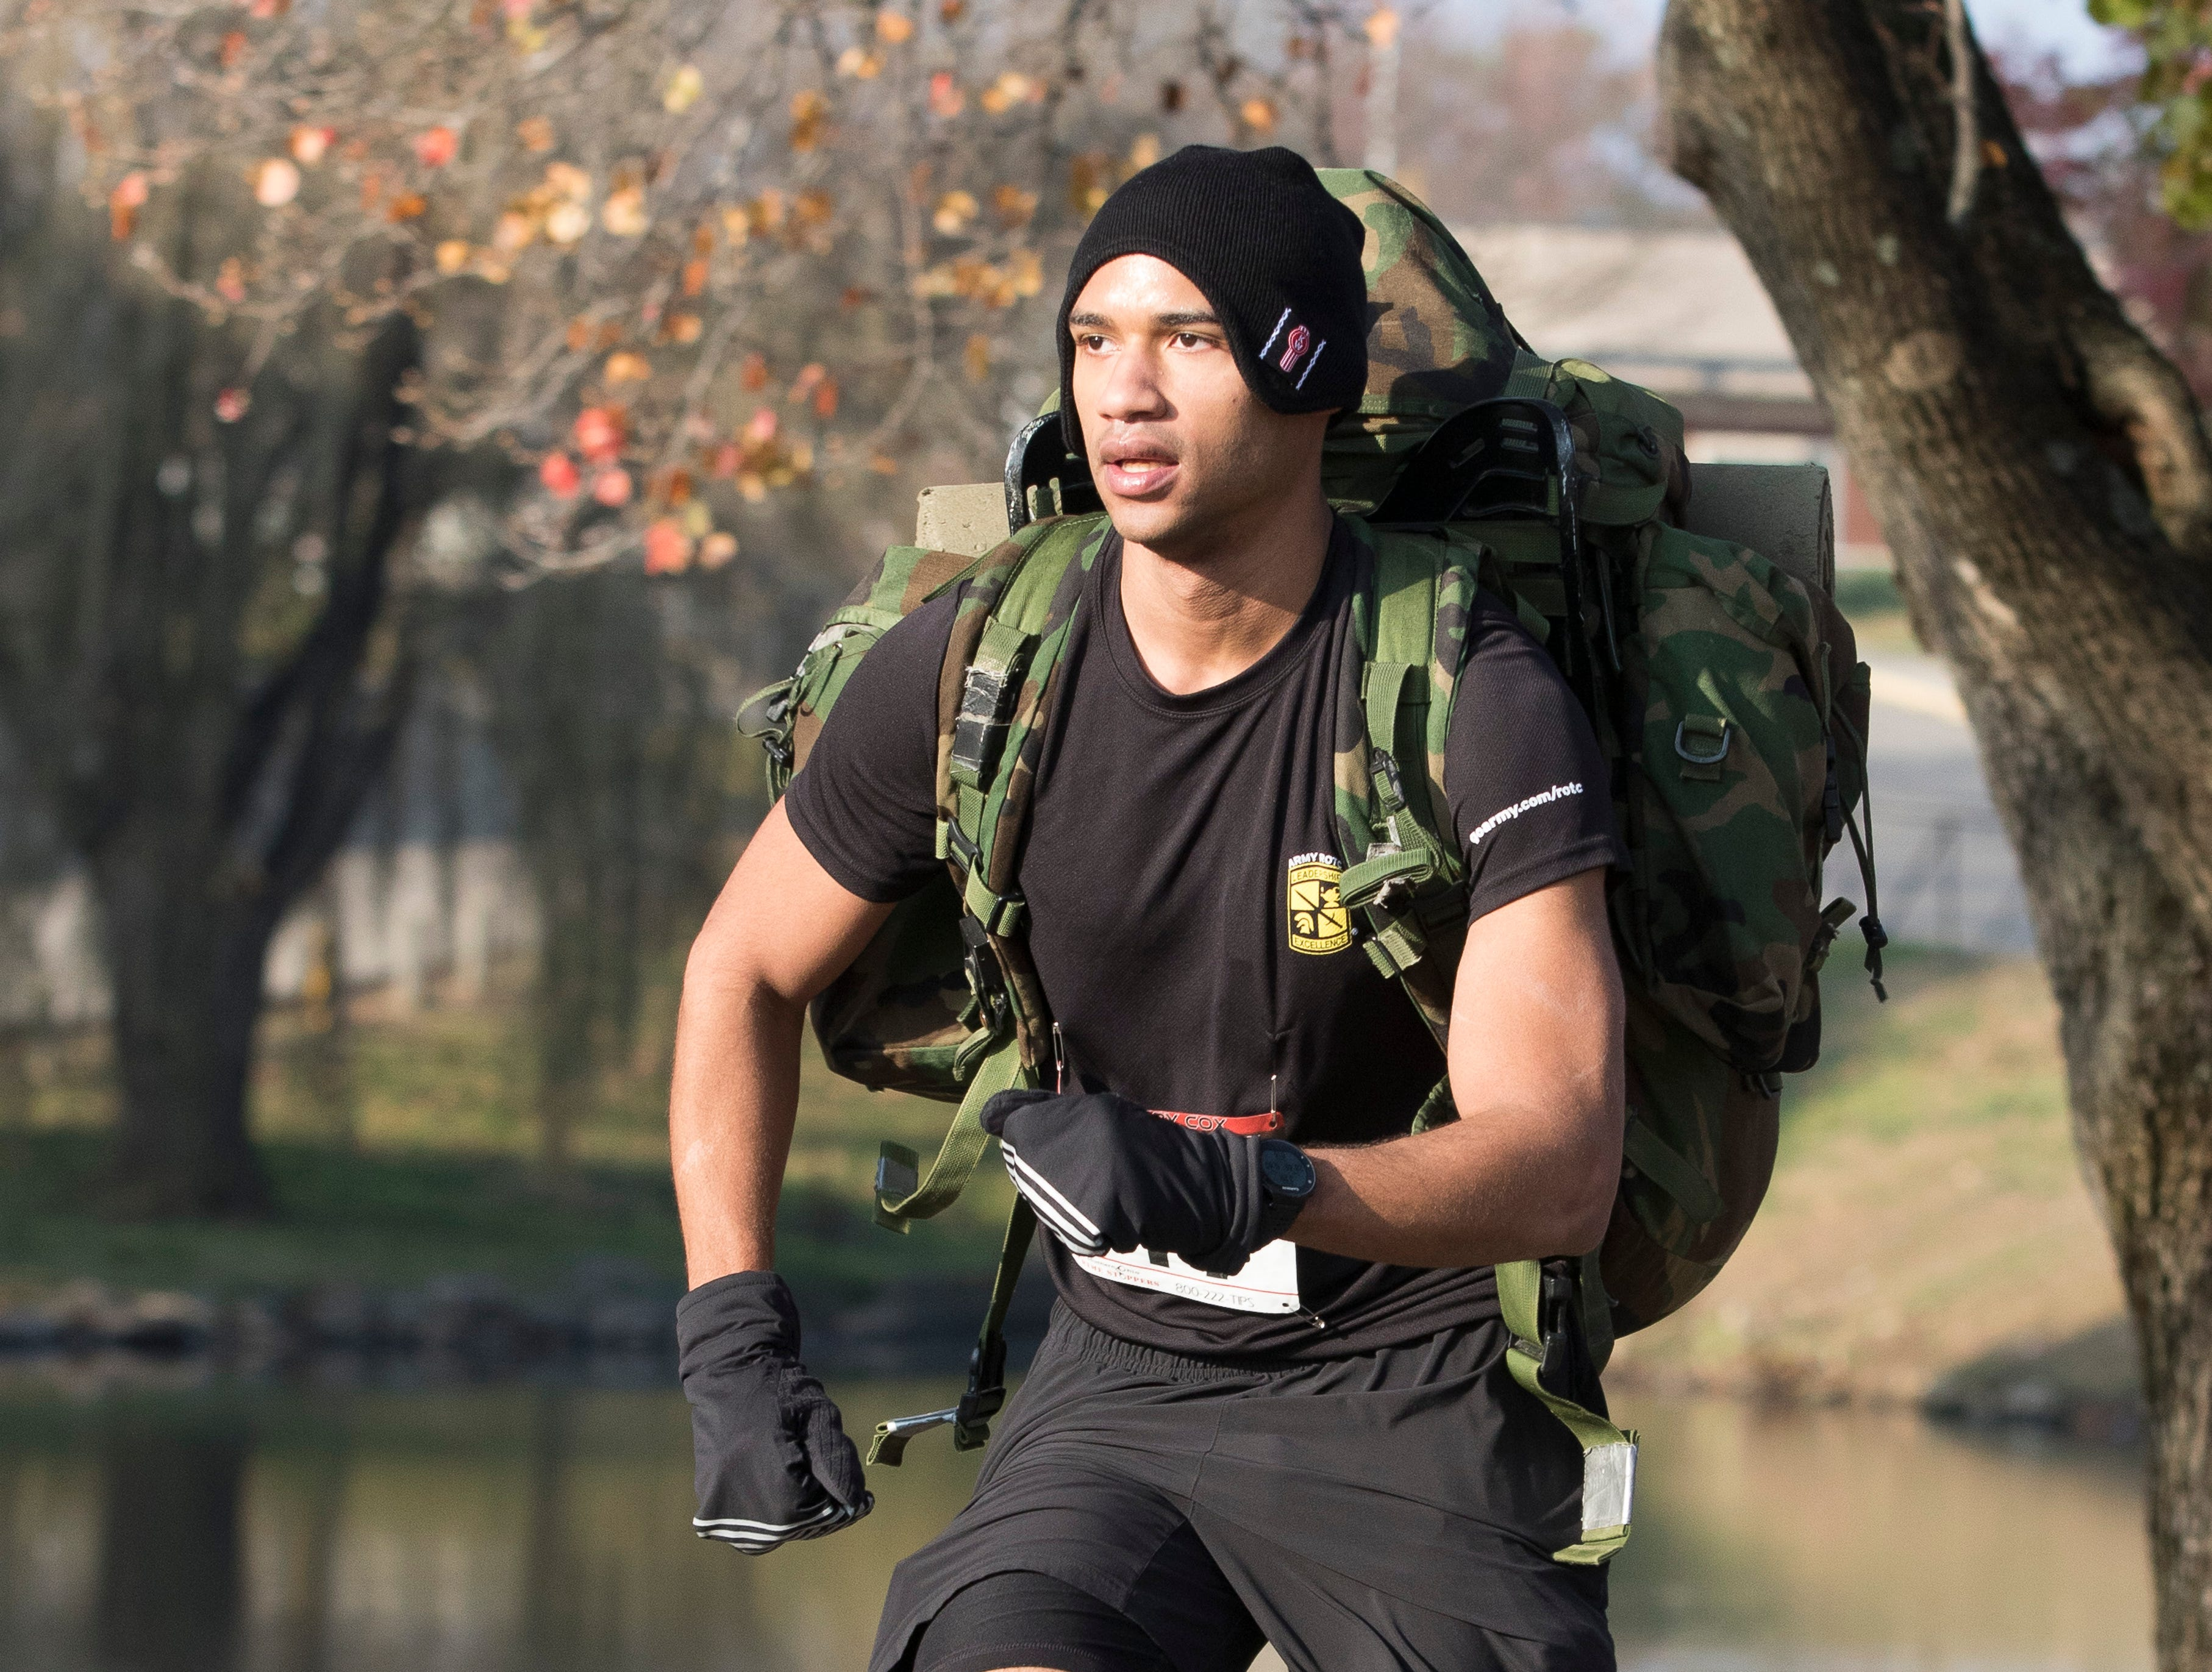 "Chillicothe native Donavan Lowe runs with his army backpack during the 14th annual Larry Cox Turkey Trot in Yoctangee Park in Chillicothe, Ohio, Thursday morning. ""I have been running for years and was like I should add my army backpack to make it more difficulty,"" said Lowe, who is currently in the Army ROTC program at St. Bonaventure University."